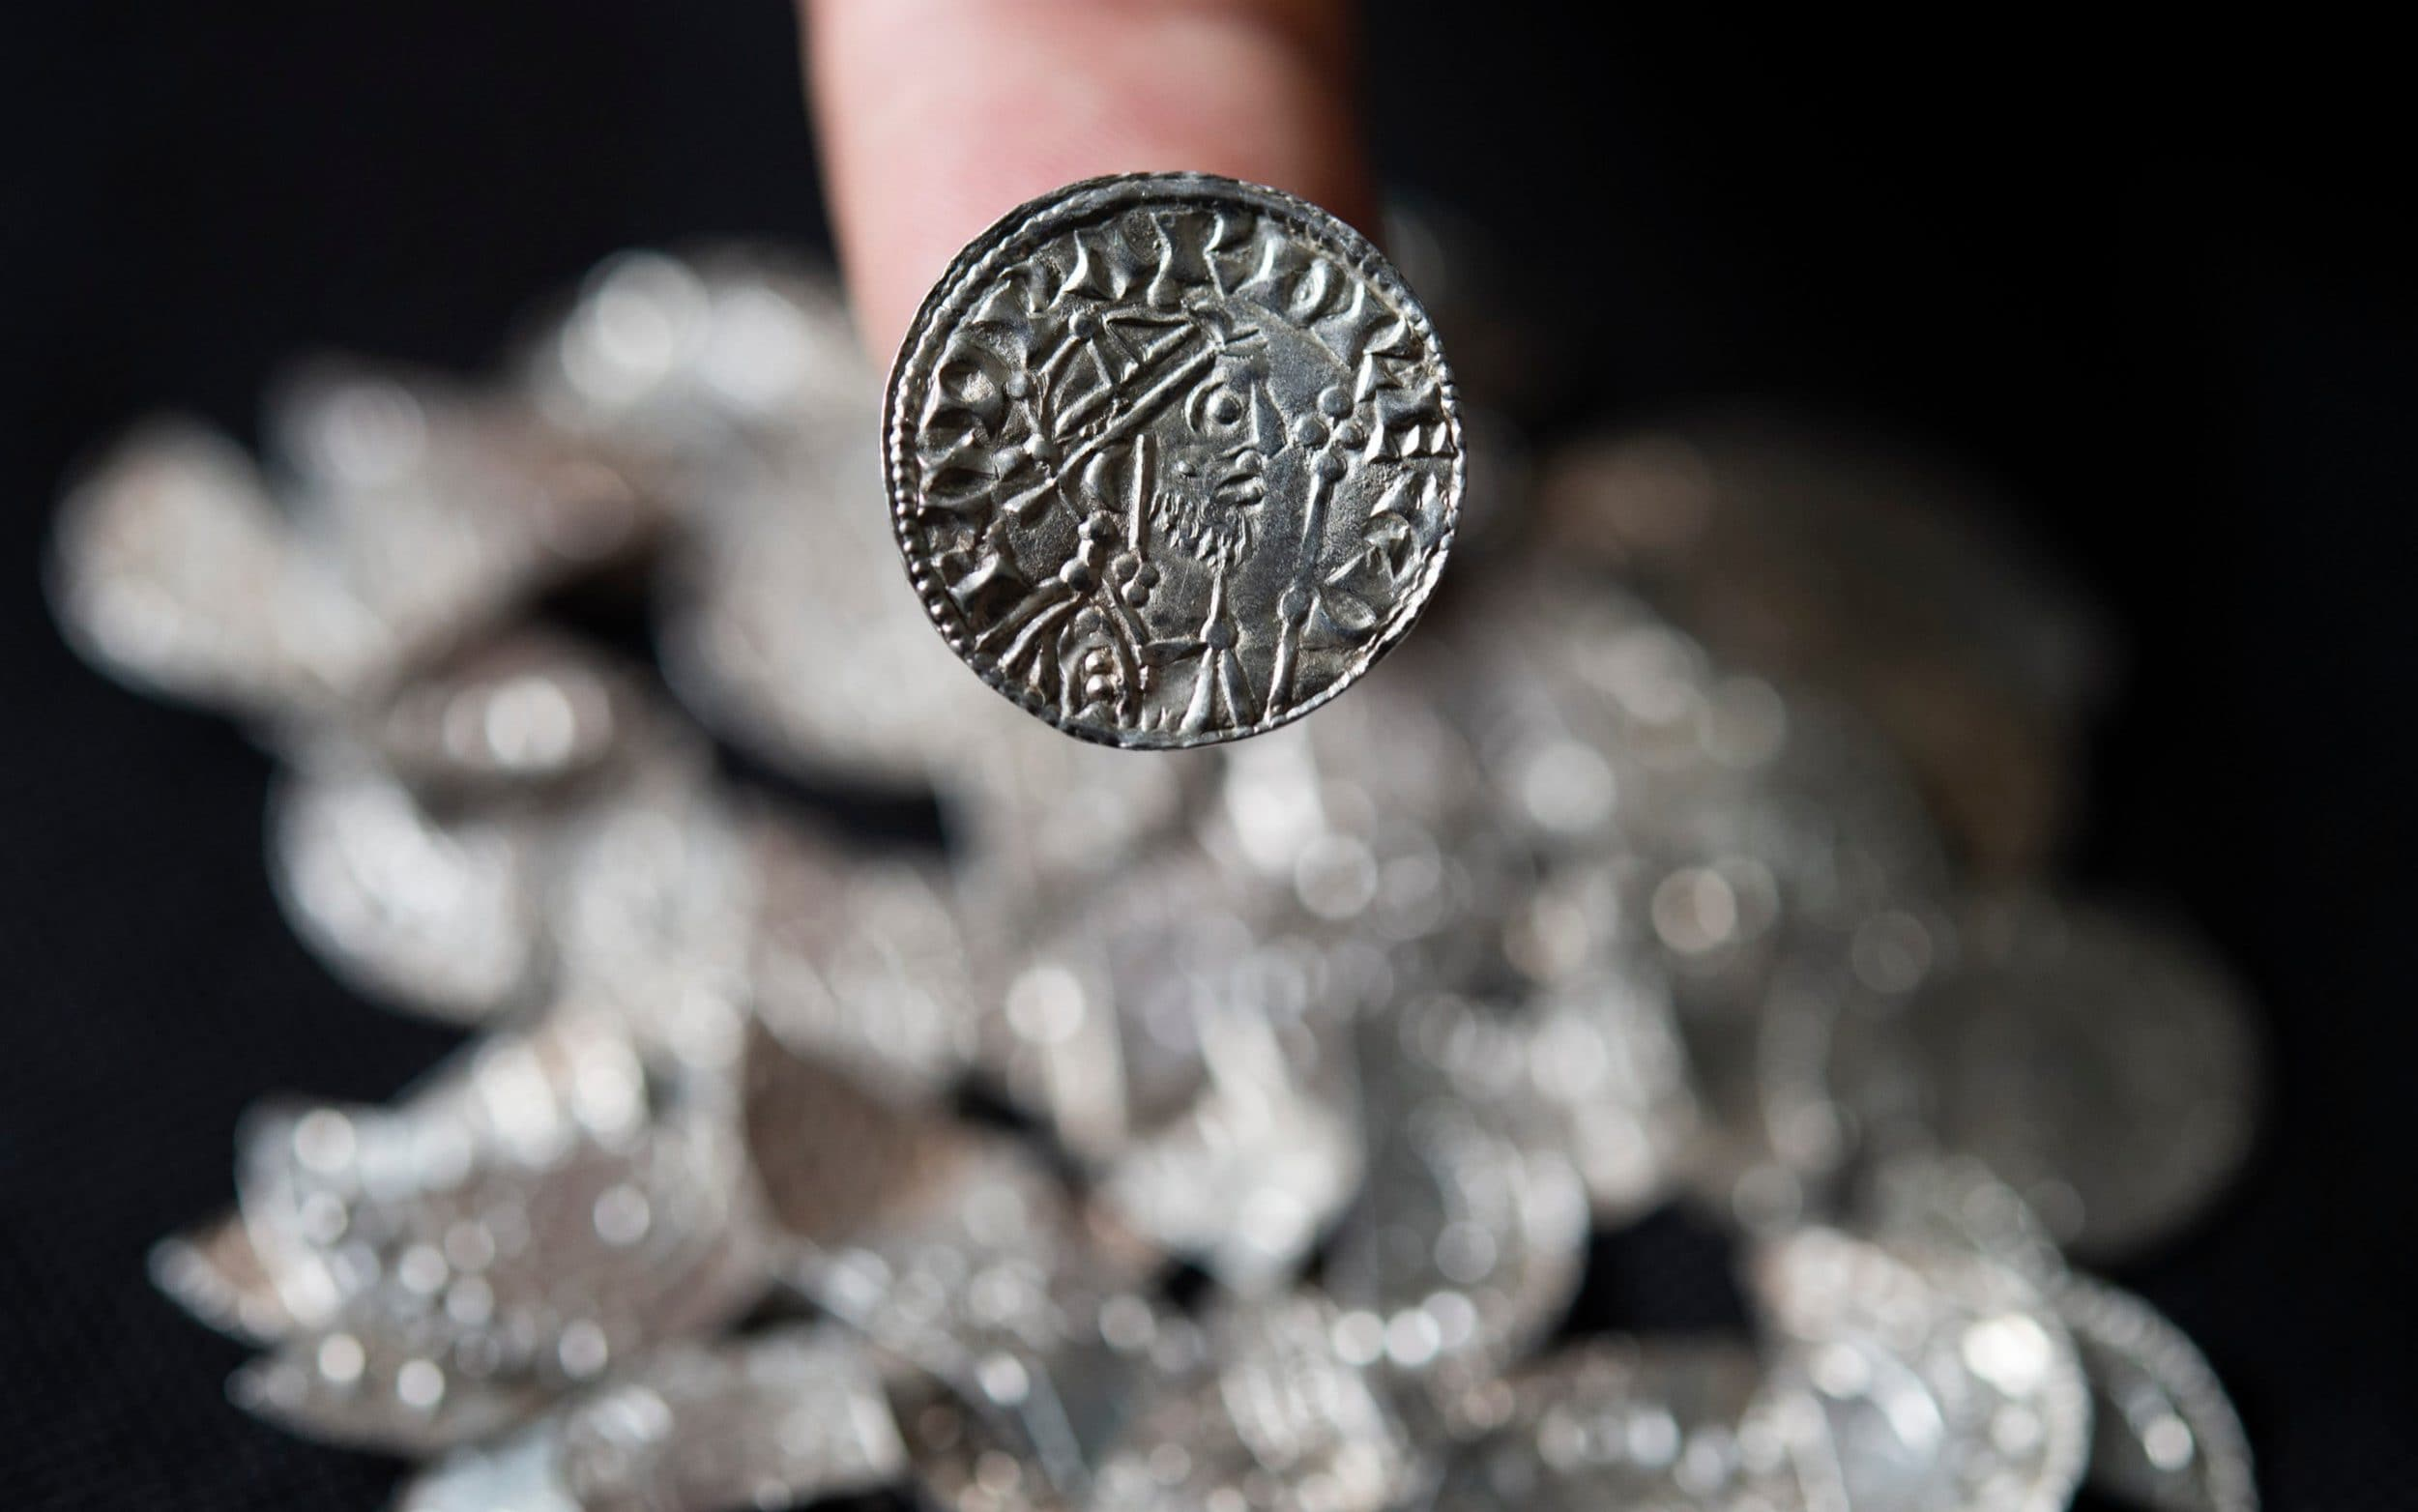 Major hoard of £5m Norman coins are early example of tax avoidance, British Museum says